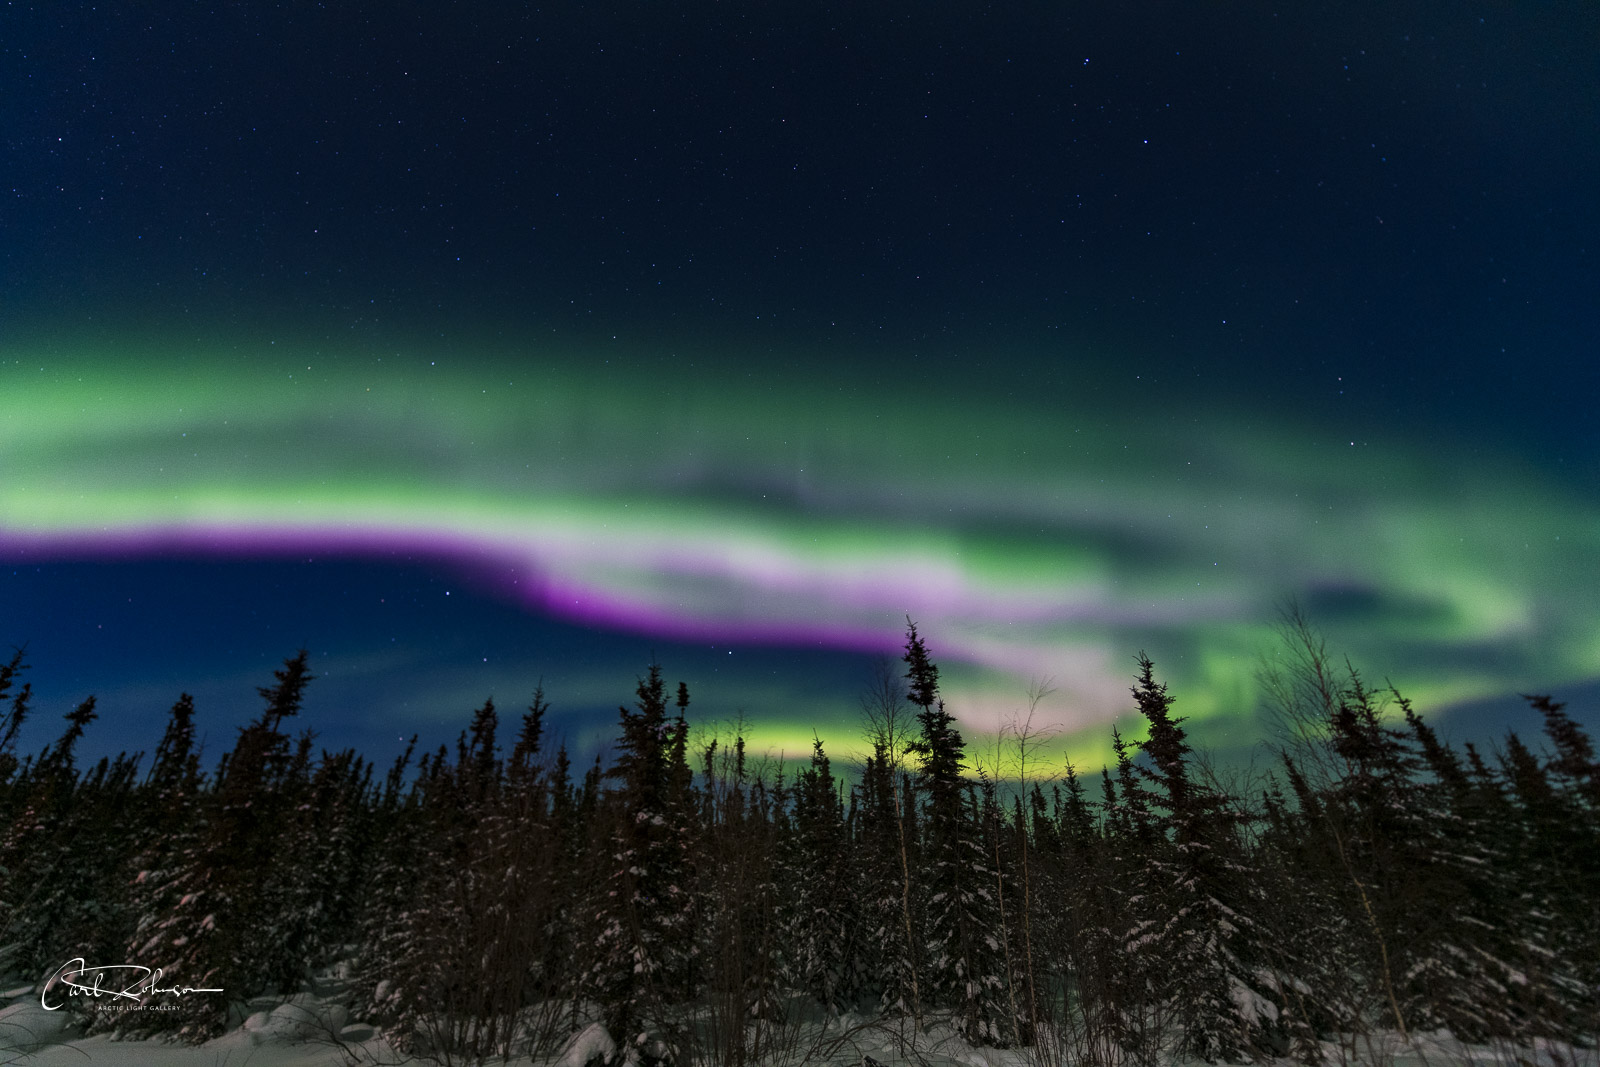 The aurora borealis reaches an active, dancing stage where light and dark pink hues move along the bottom of the display.